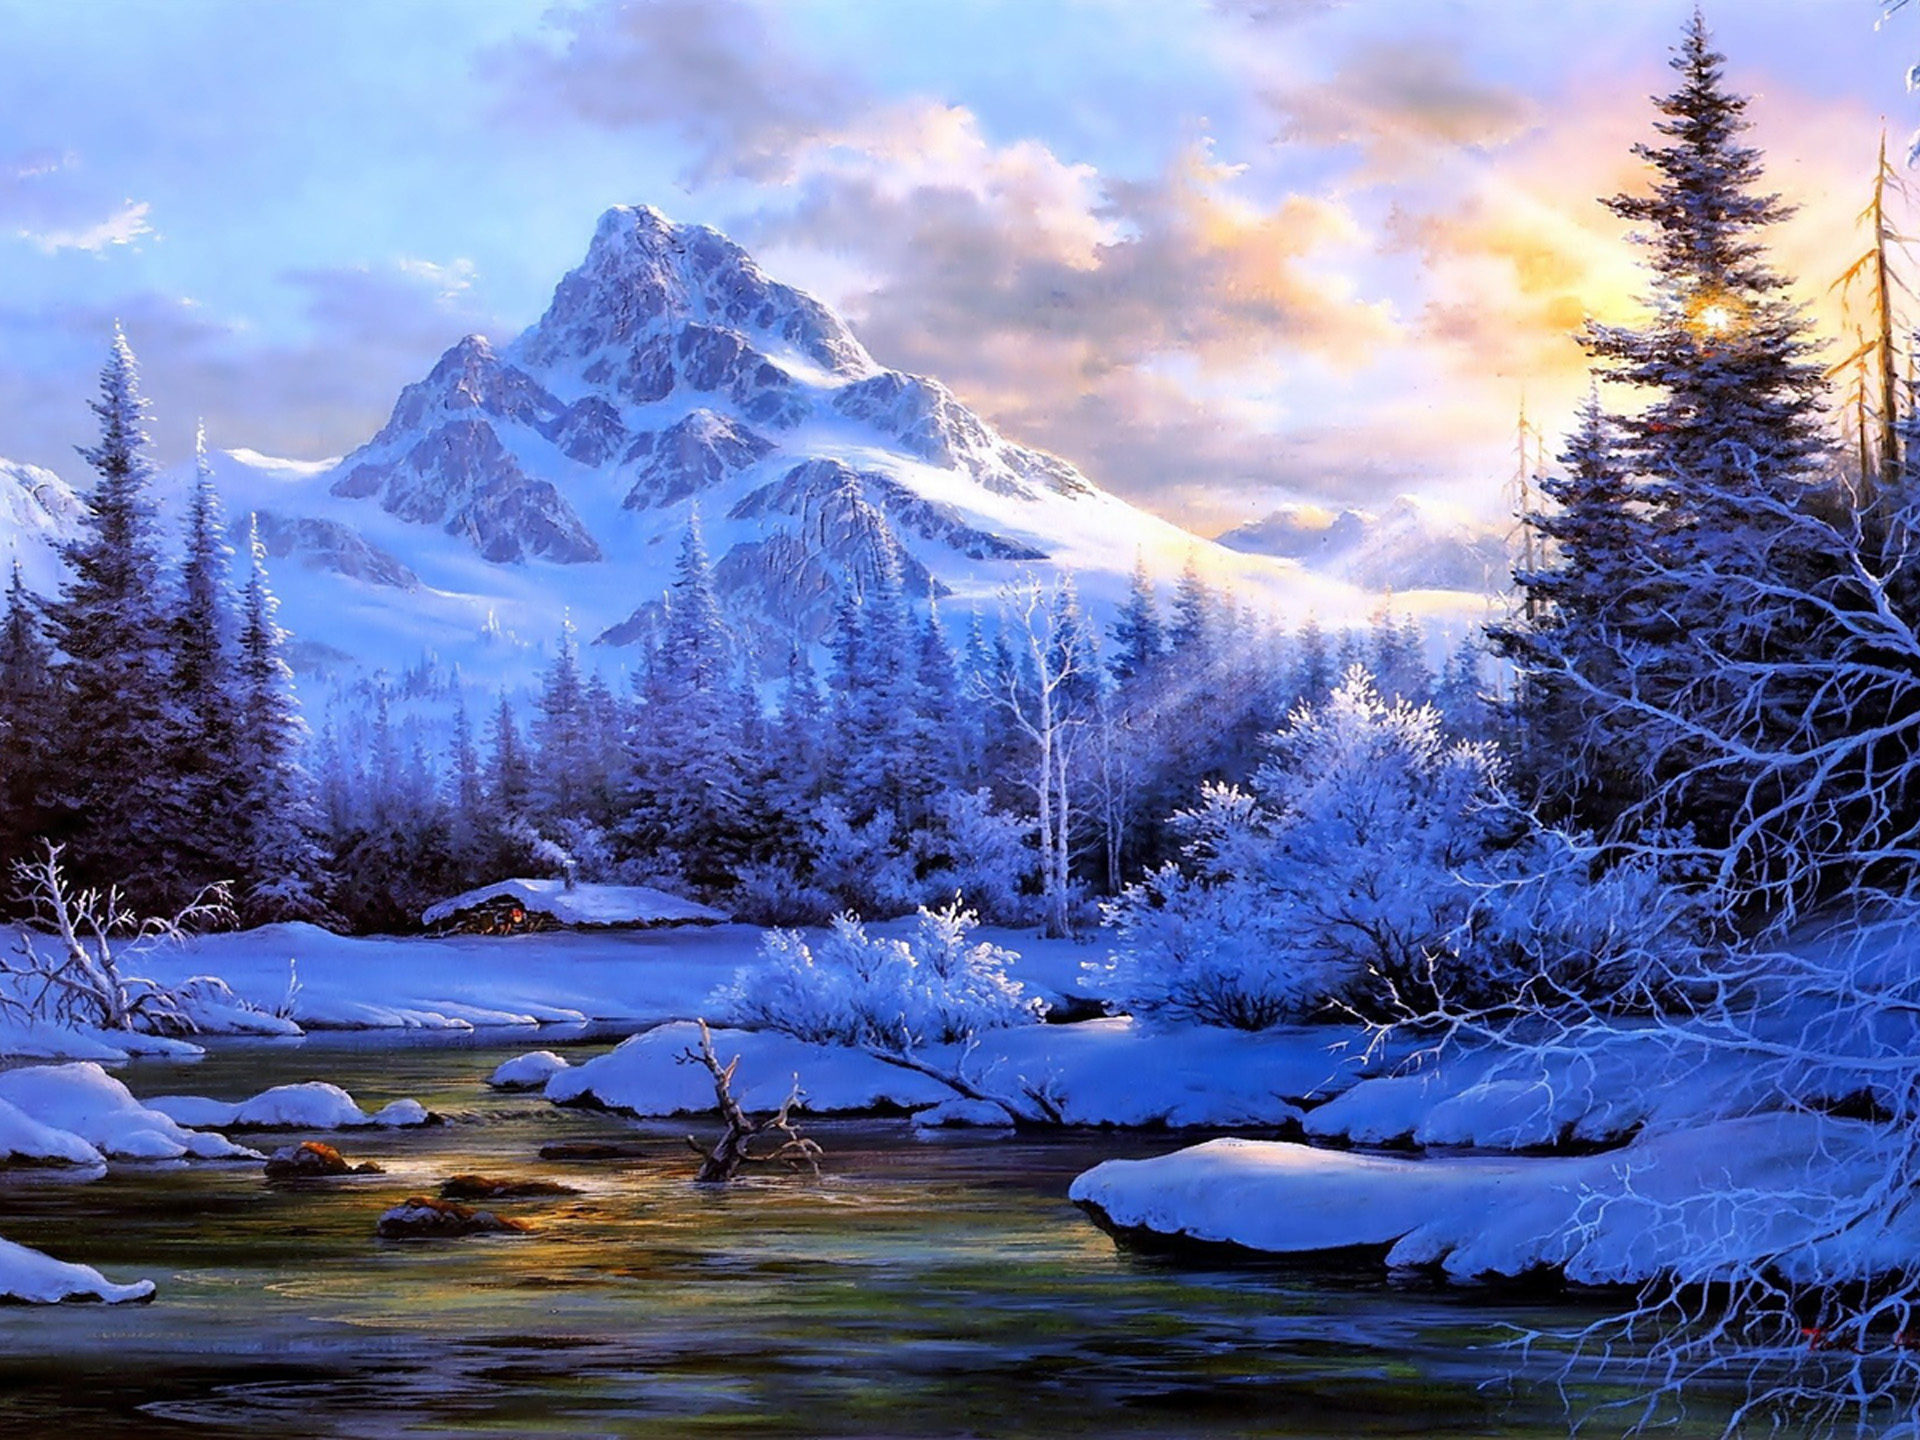 Beautiful Water Fall Scenery Wallpapers Winter Landscape Background Mountain River Trees Snow